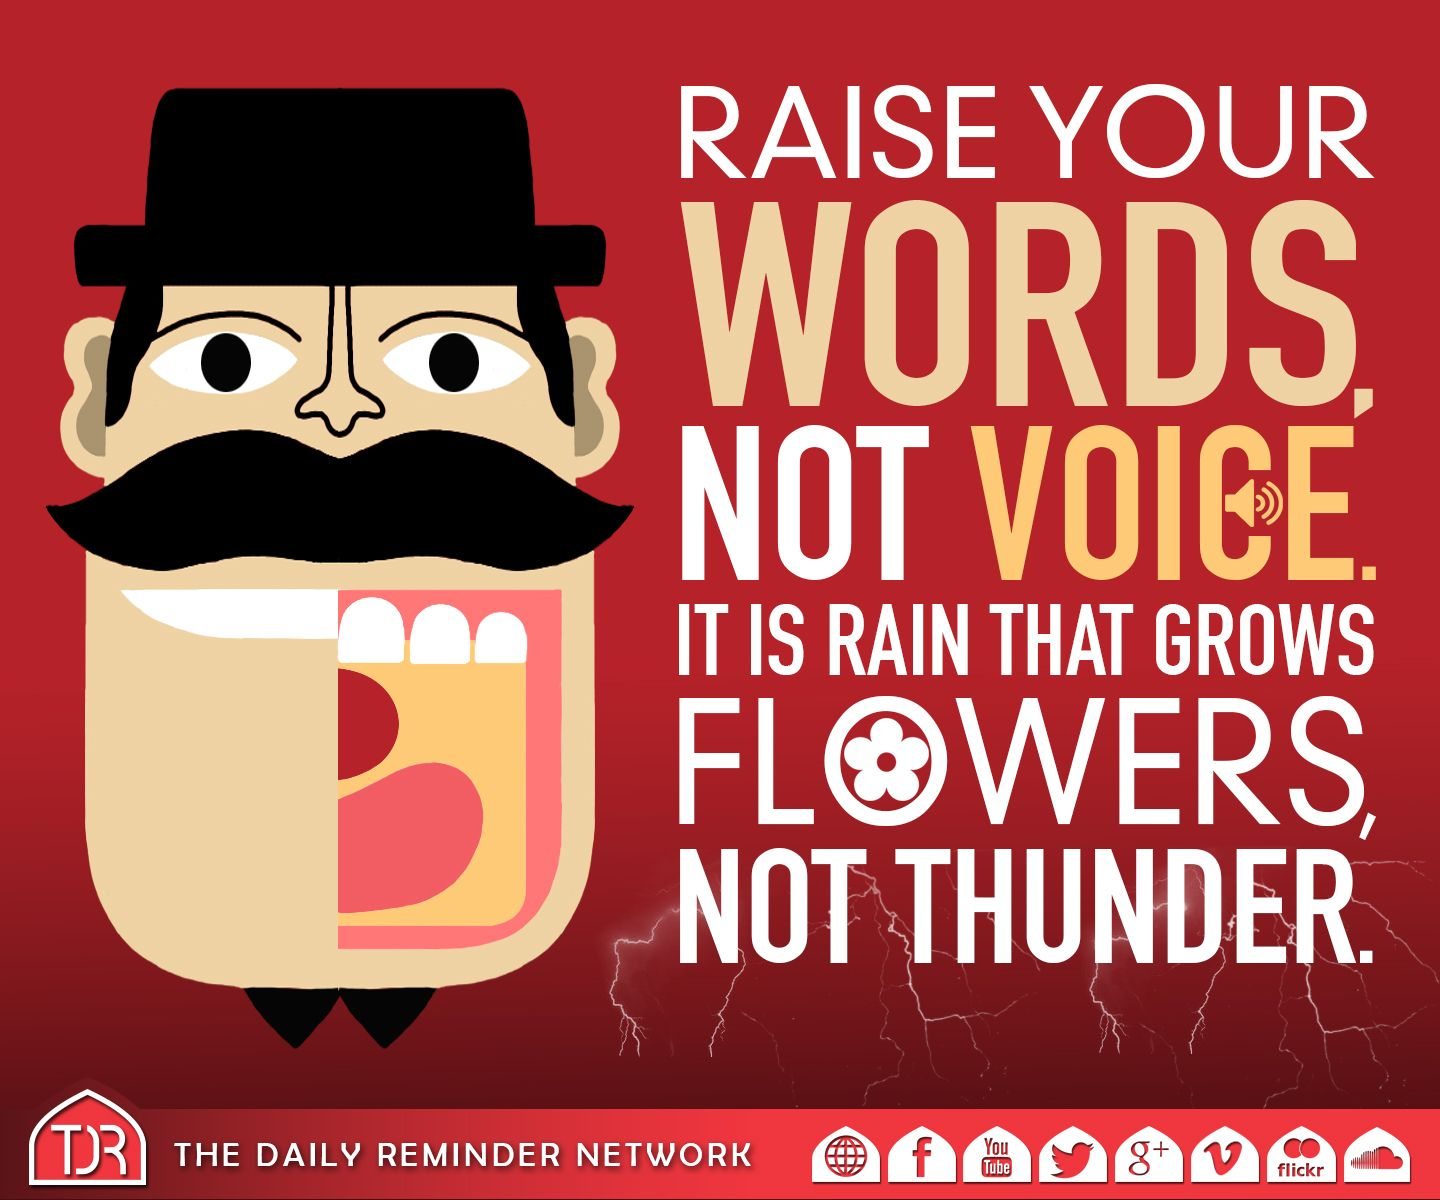 Raise your words, not voice.   It is rain that grows flowers, not thunder.  'He who believes in Allah and the last day must either speak good or remain silent.' [Hadith]